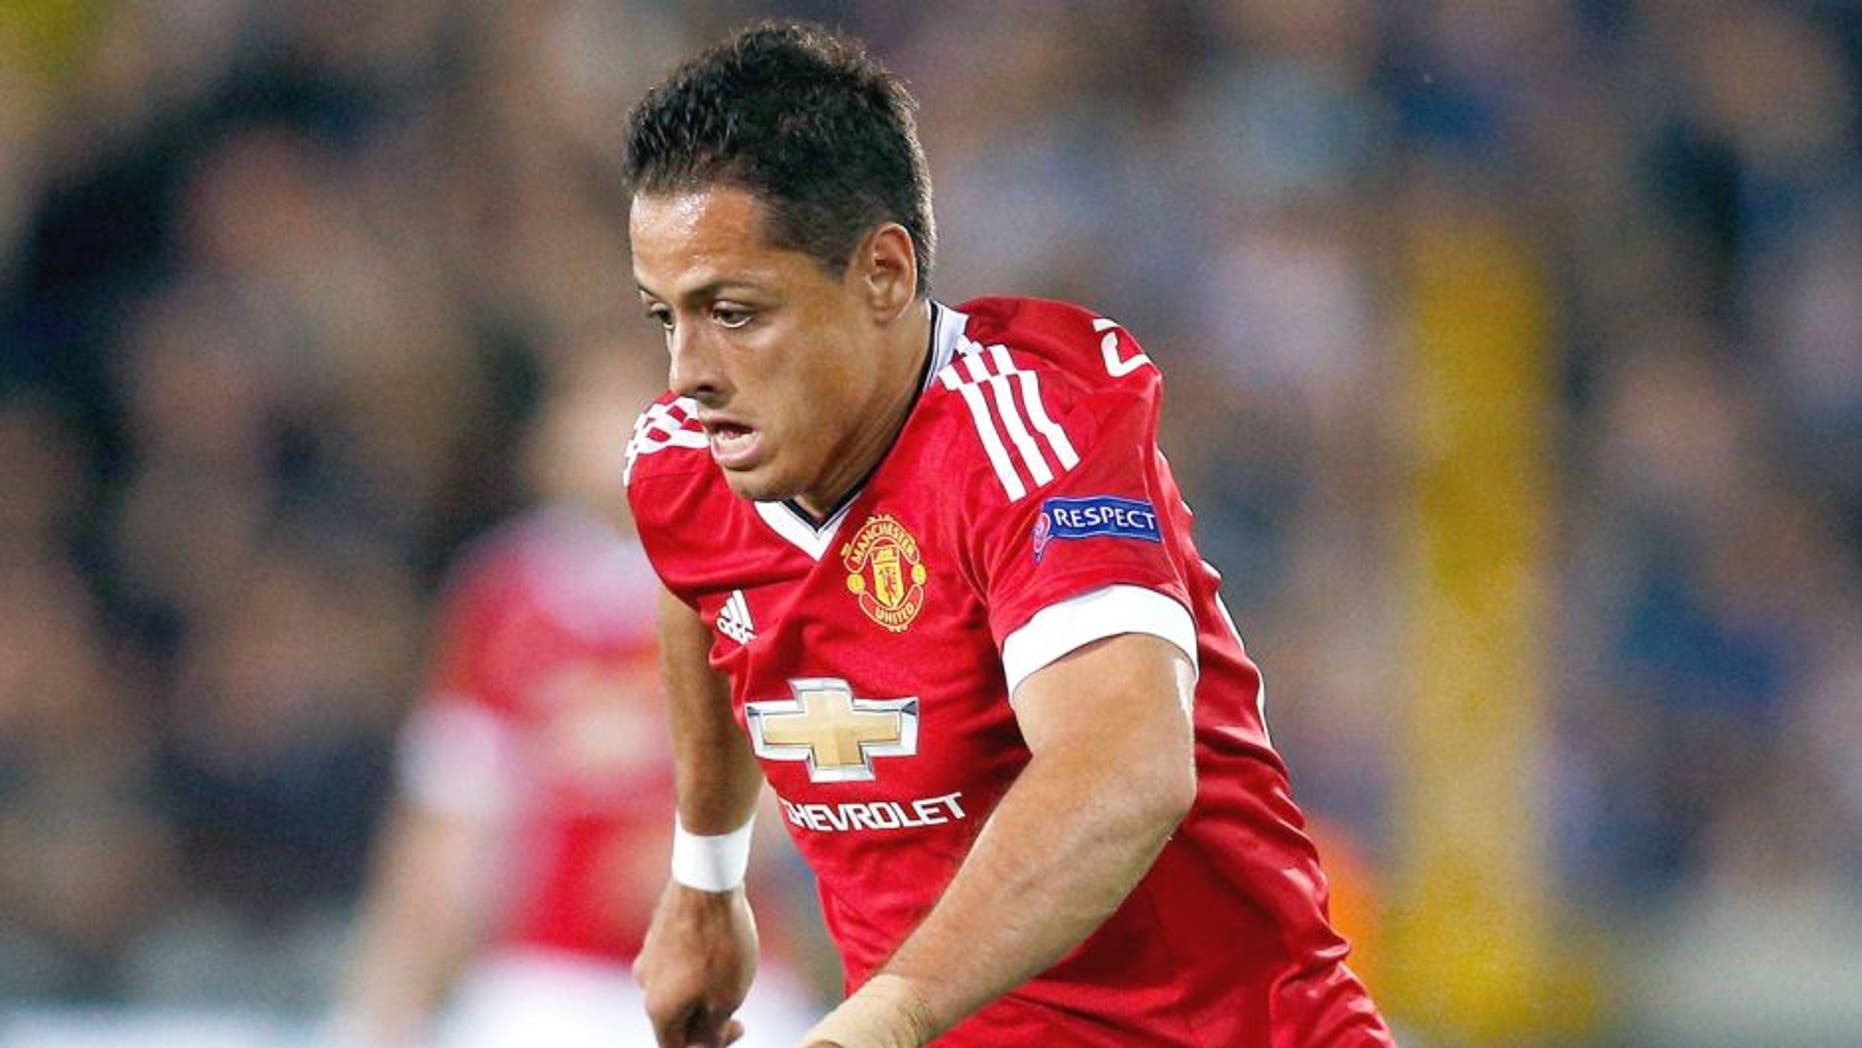 BRUGGE, BELGIUM - AUGUST 26: Javier Hernandez of Manchester United in action during the UEFA Champions League qualifying round play off 2nd leg match between Club Brugge and Manchester United held at Jan Breydel Stadium on August 26, 2015 in Brugge, Belgium. (Photo by Dean Mouhtaropoulos/Getty Images)